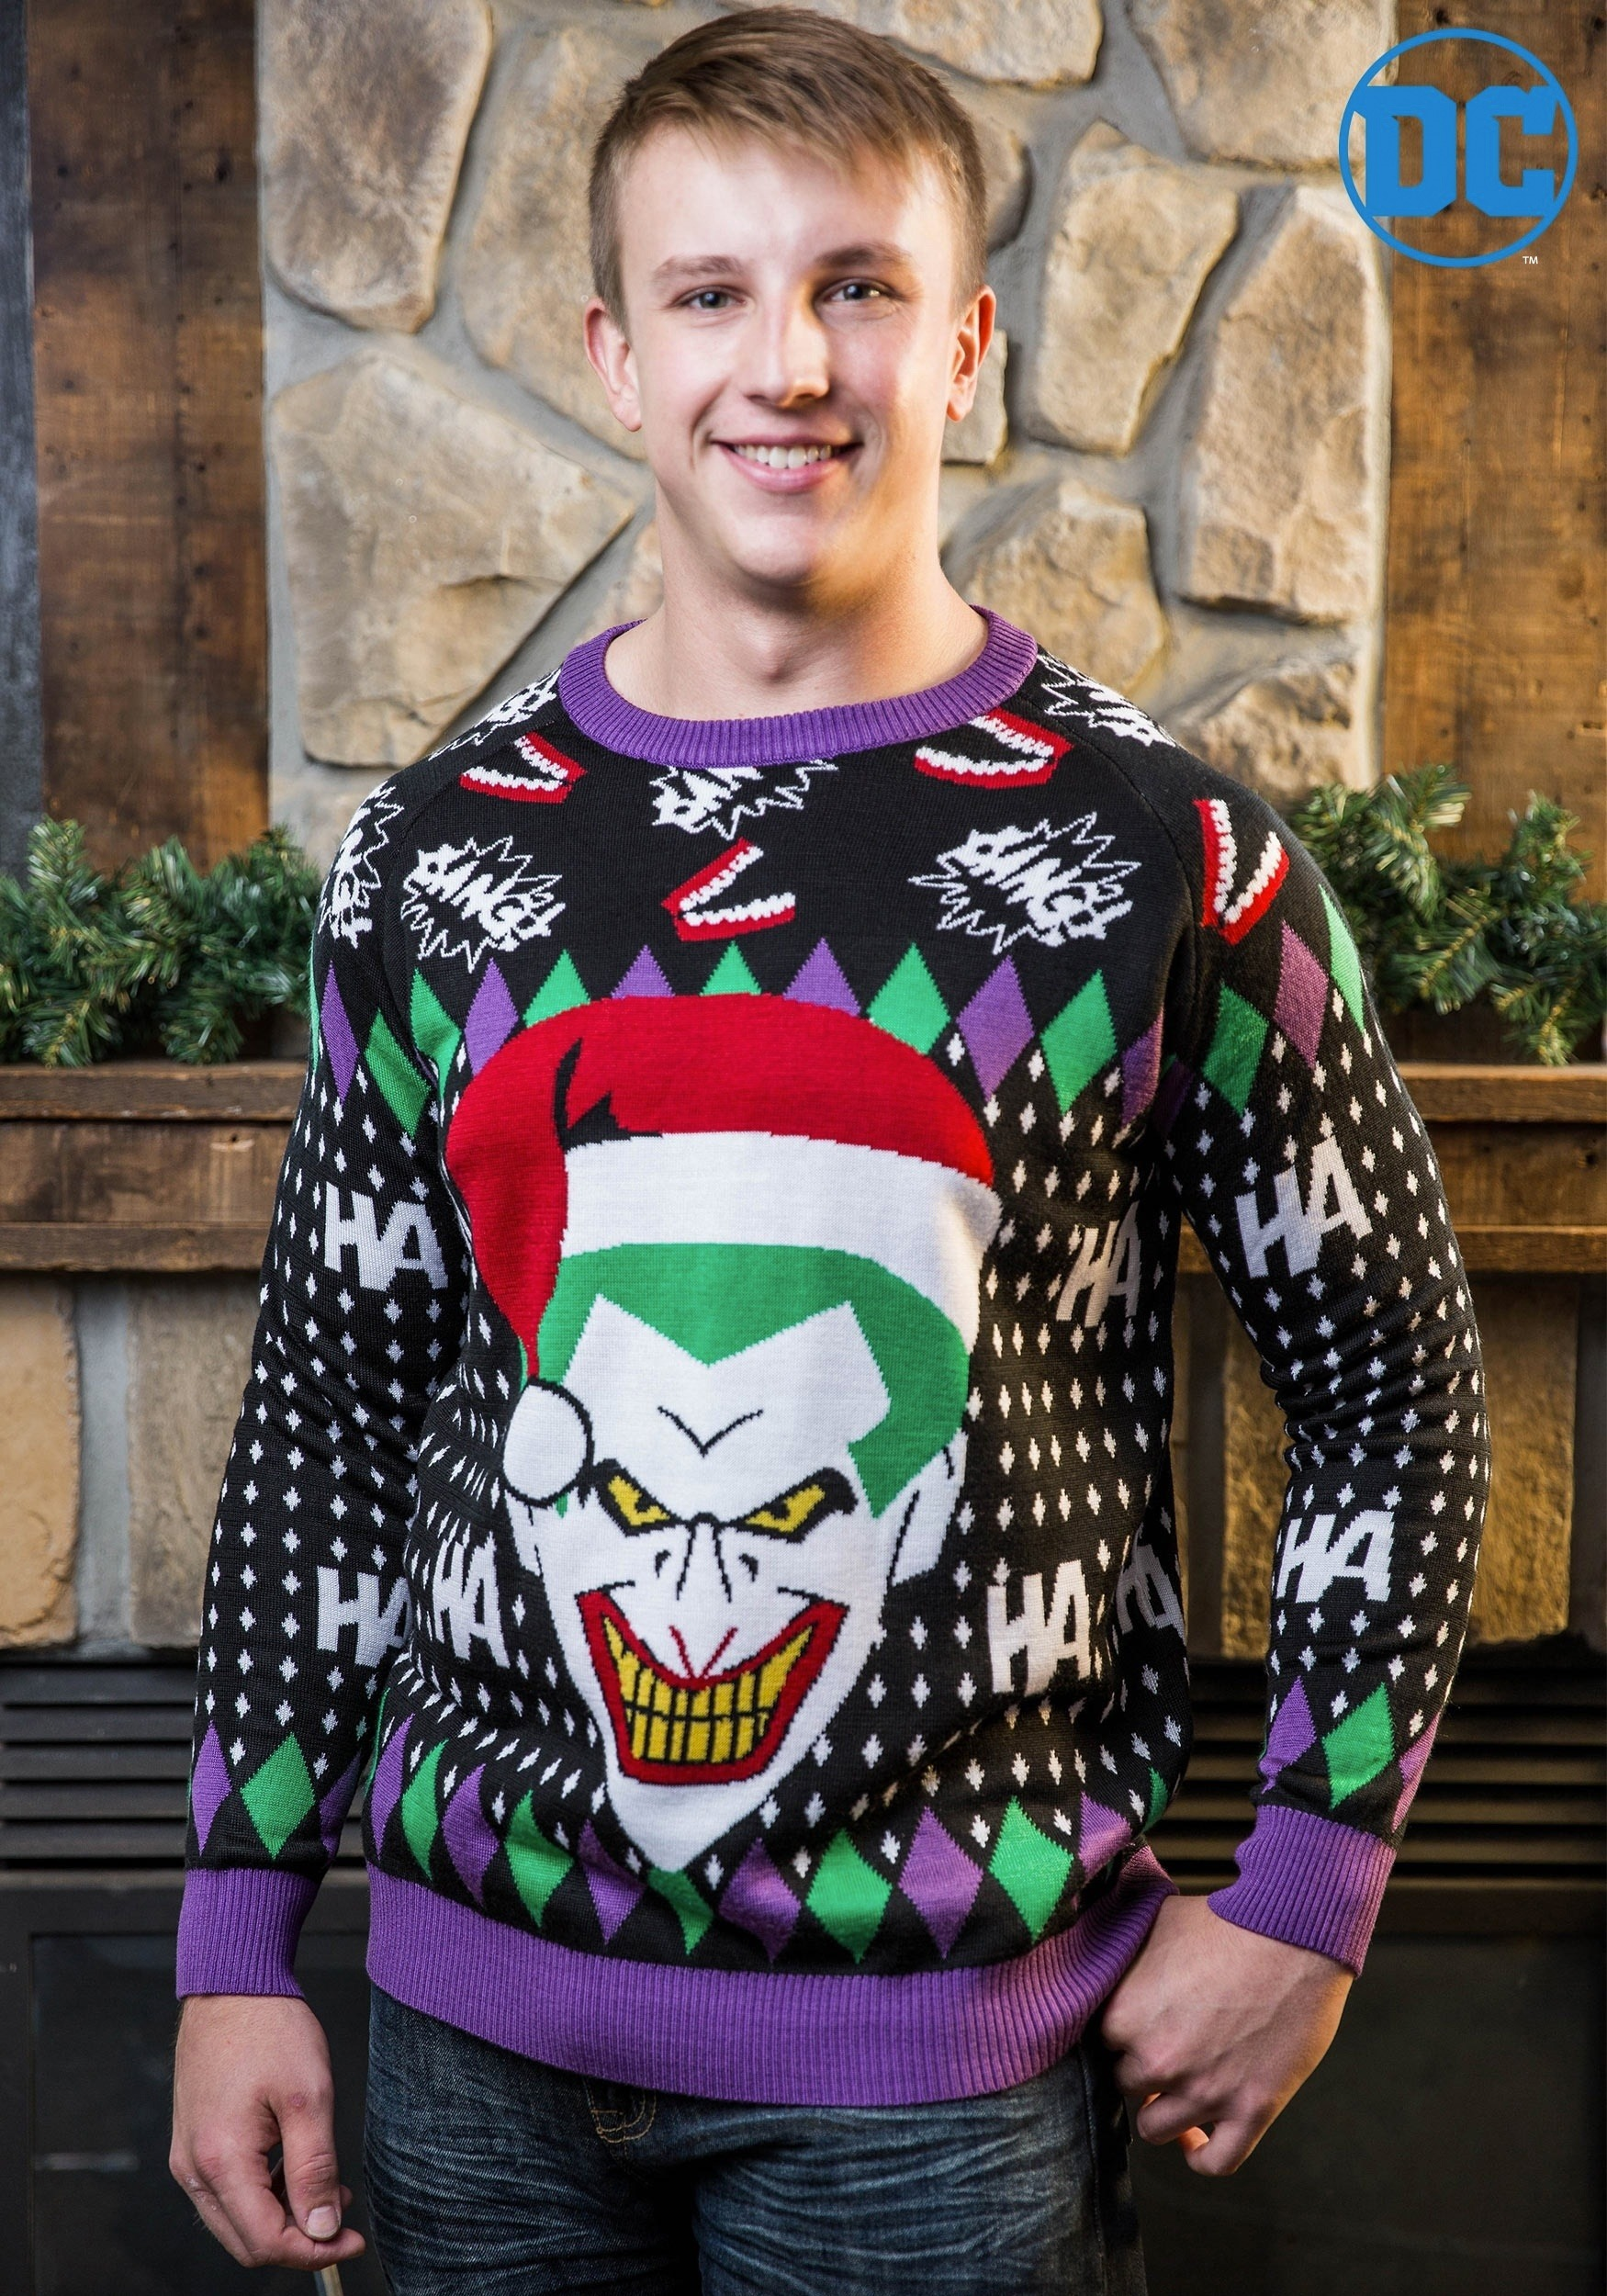 DC Joker Santa Sweater FUN9129